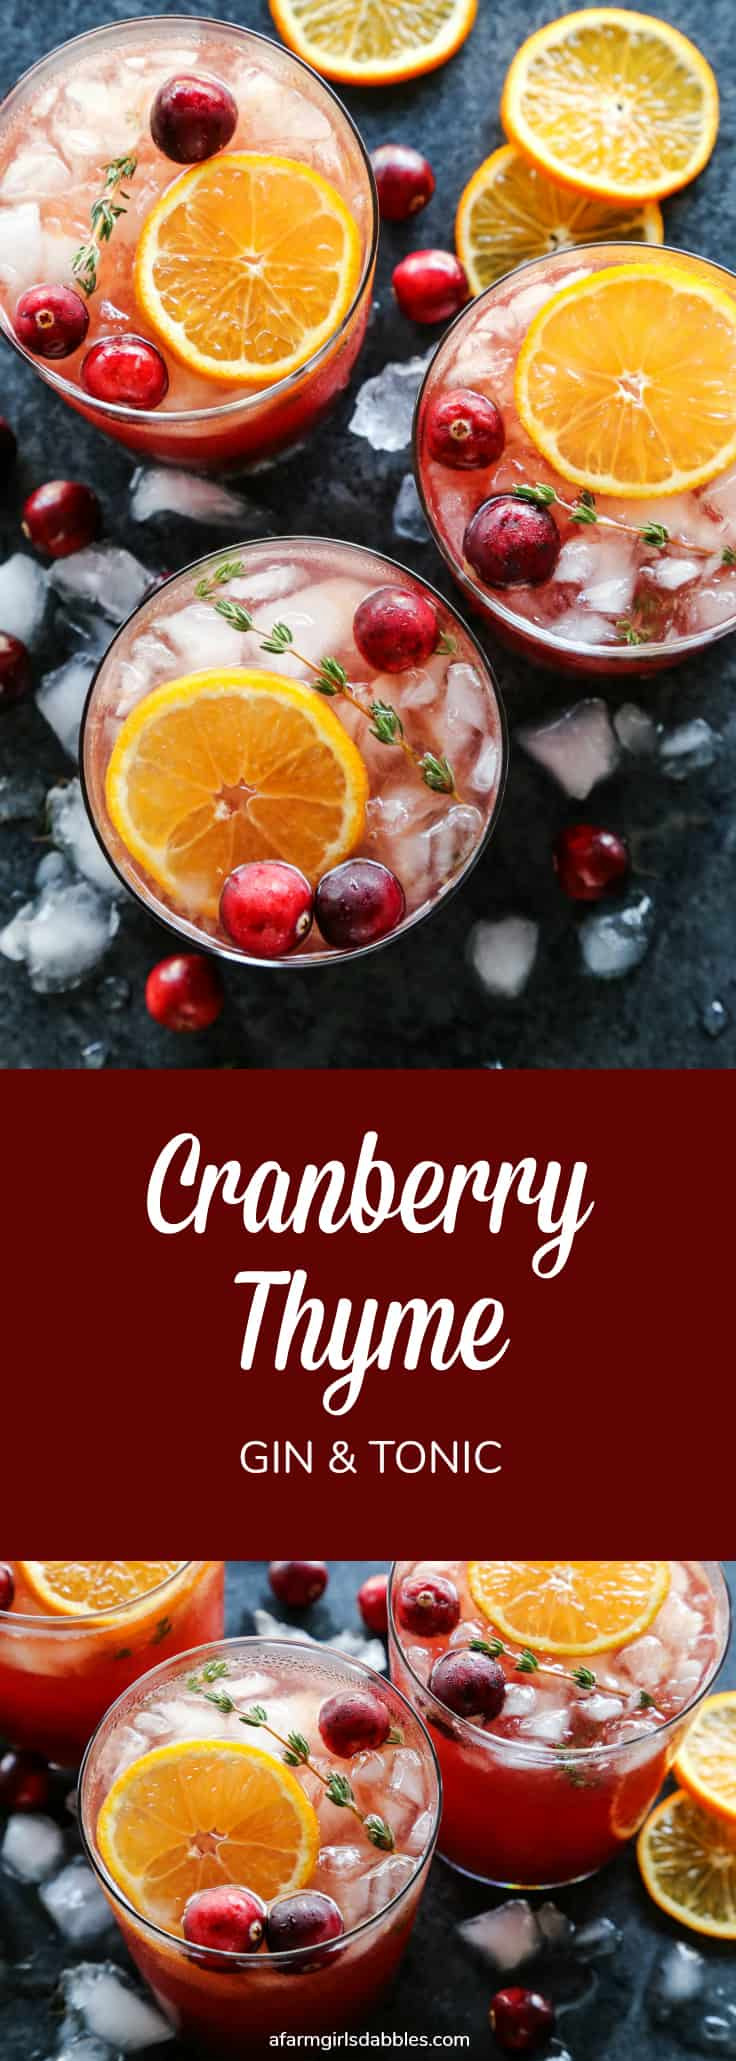 Pinterest image for cranberry thyme gin and tonic